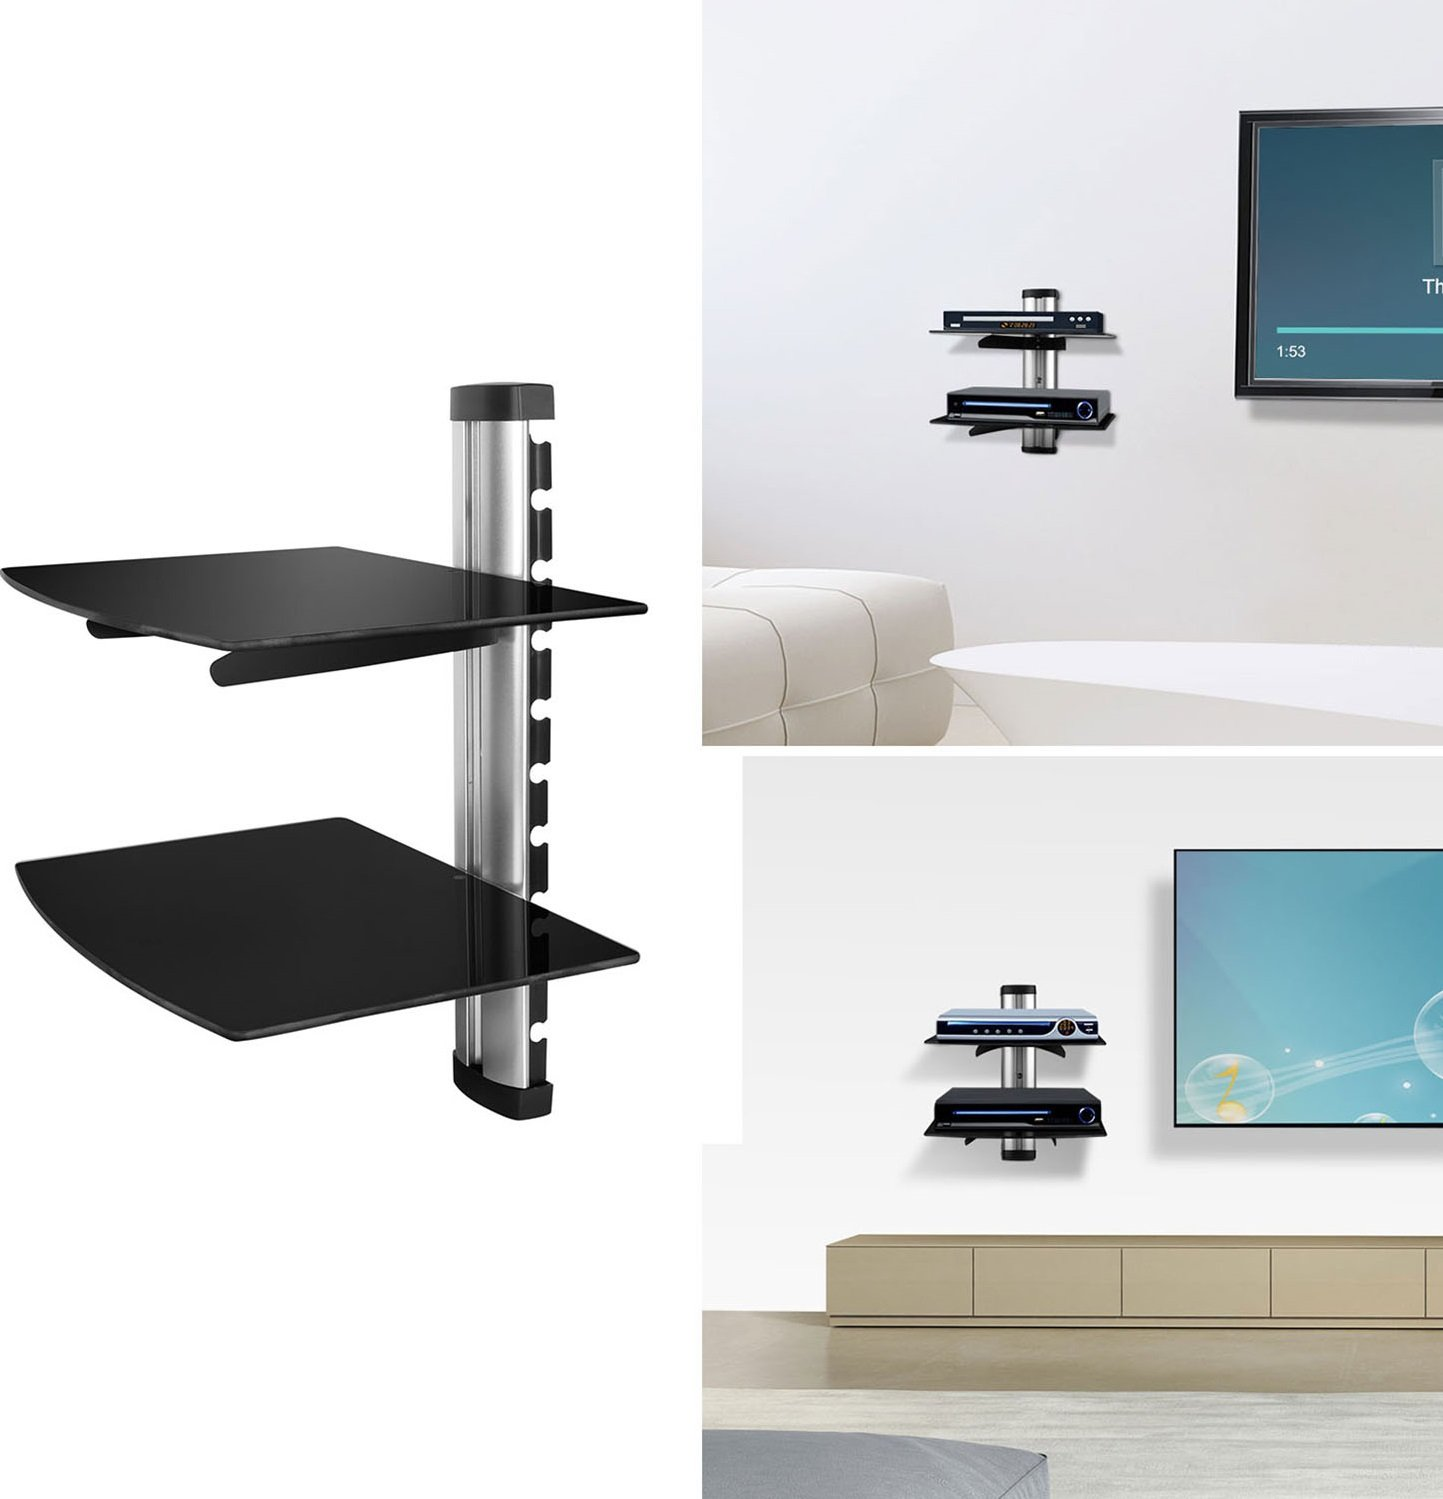 gpct floating wall mount strengthened tempered shelf bracket for dvd double glass component stand player receiver gaming systems xbox one diy suspended shelves mounted corner